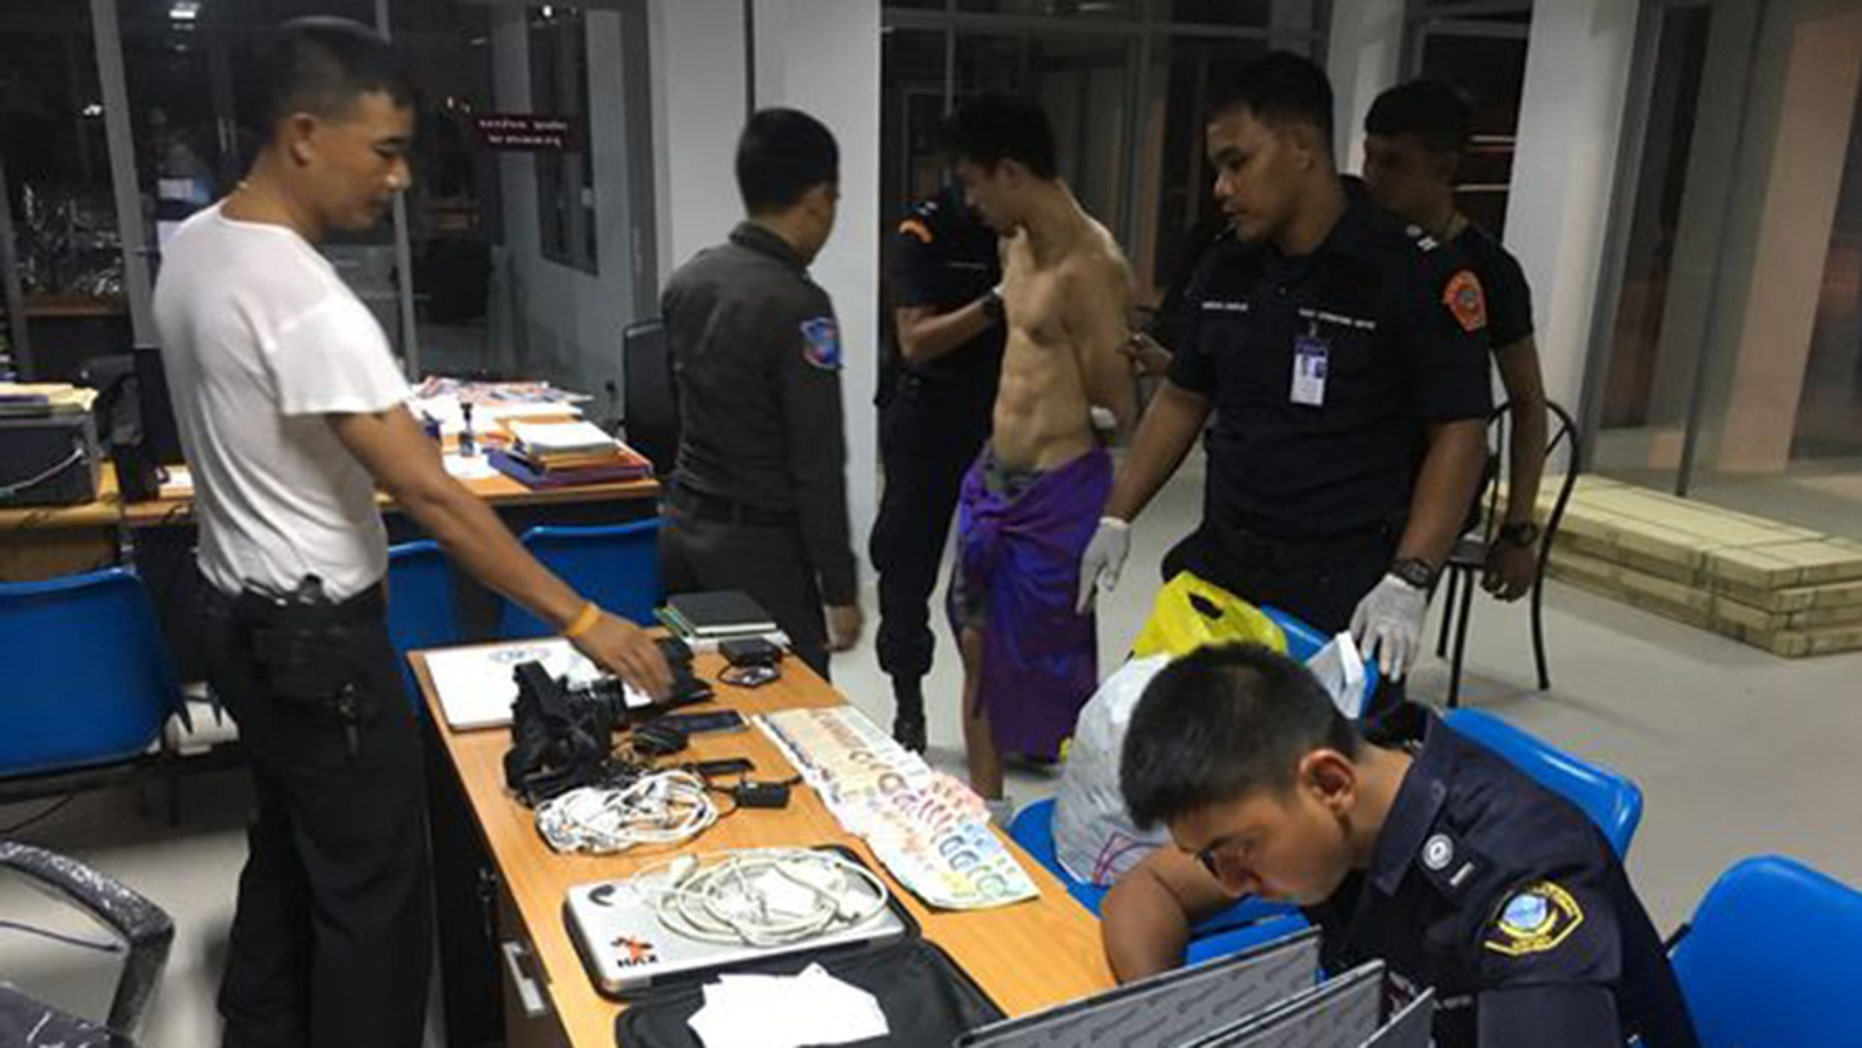 Steve Cho, a 27-year-old from New York, was apprehended by six airport security officials at Phuket International Airport.